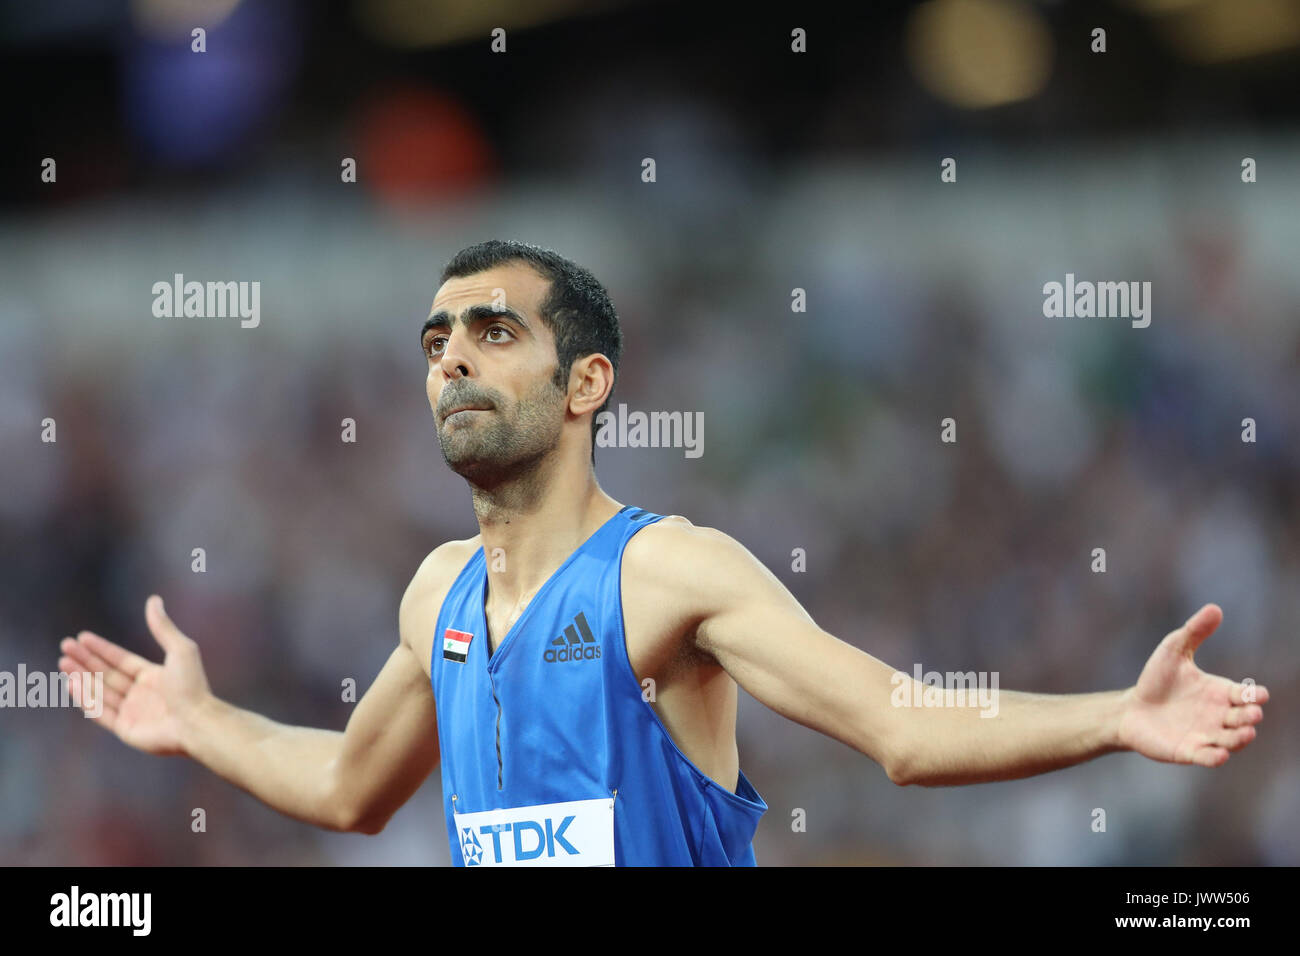 London, UK. 13th Aug, 2017.  Majd Eddin Ghazal, Syria, asks the crowd to clap as he prepares to jump in the men's high jump final on day ten of the IAAF London 2017 world Championships at the London Stadium. Credit: Paul Davey/Alamy Live News - Stock Image